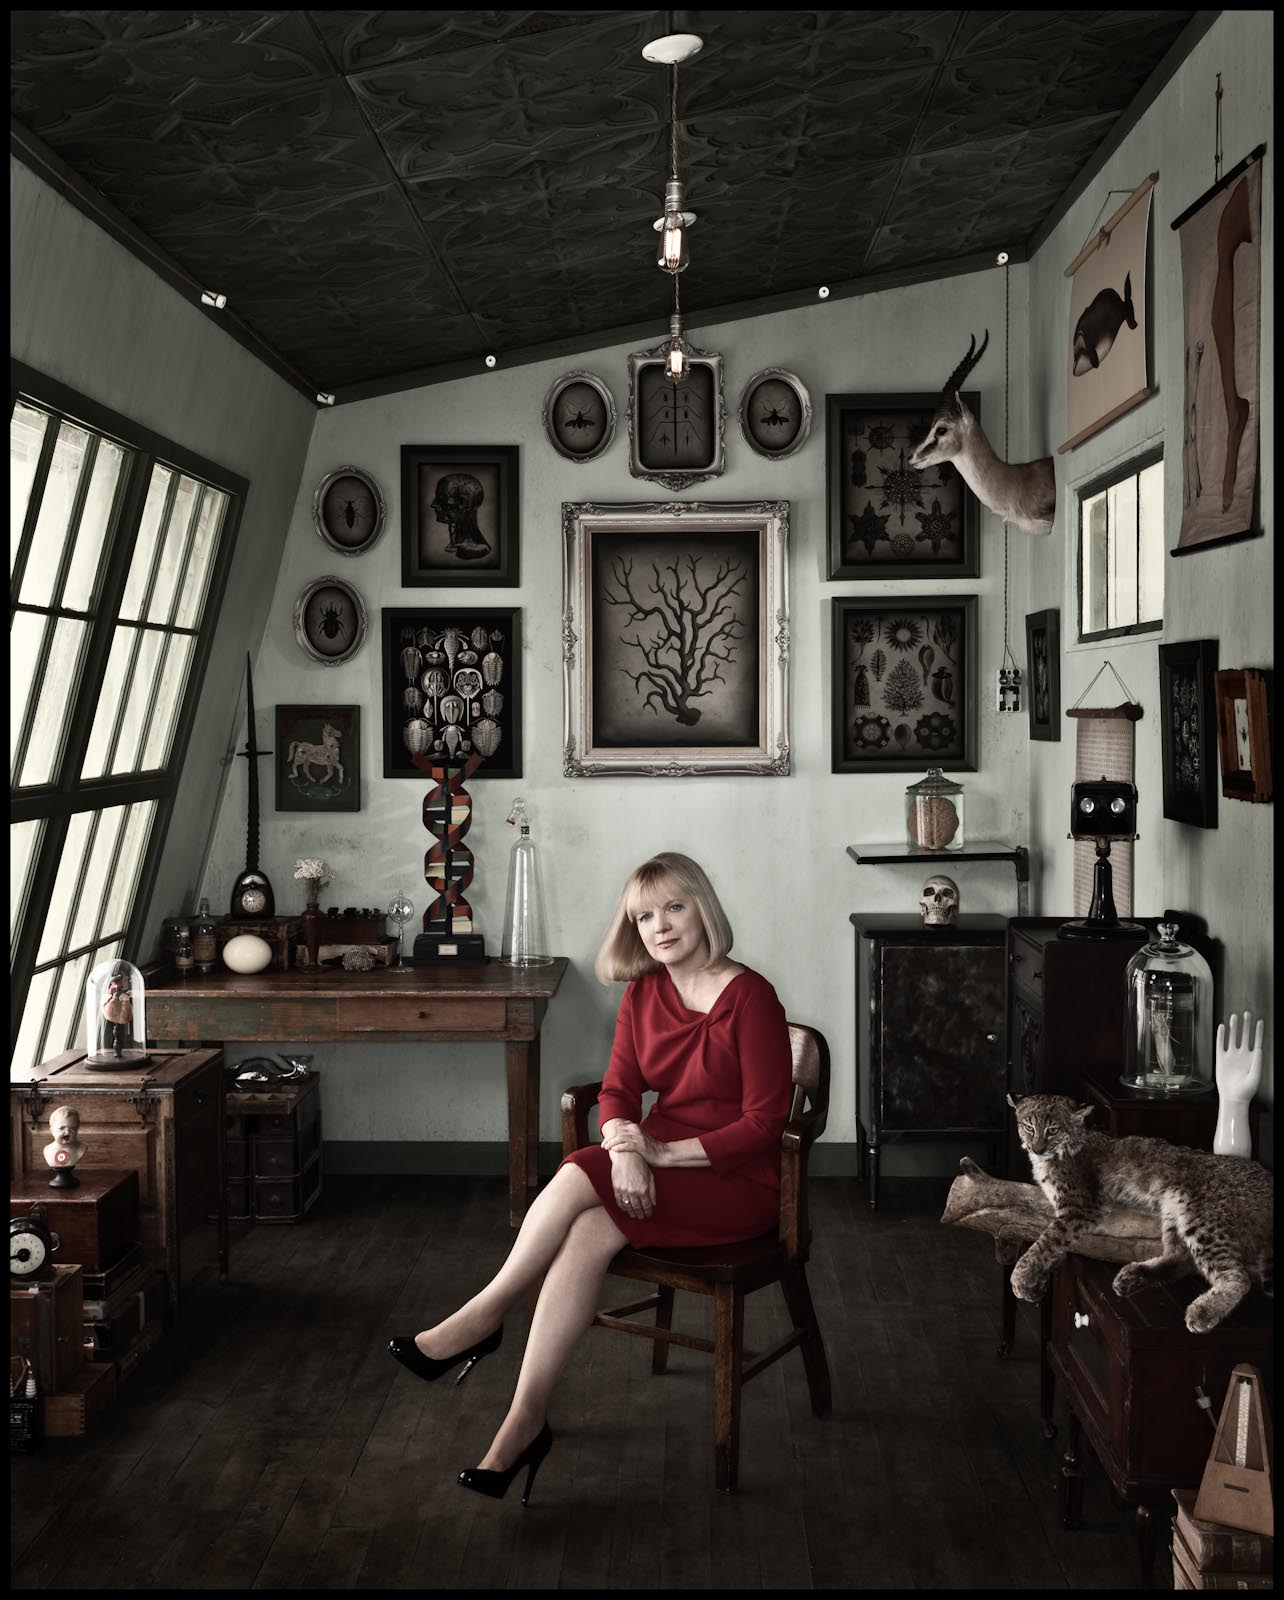 Lori Andrews - Driftwood, TX - More Magazine